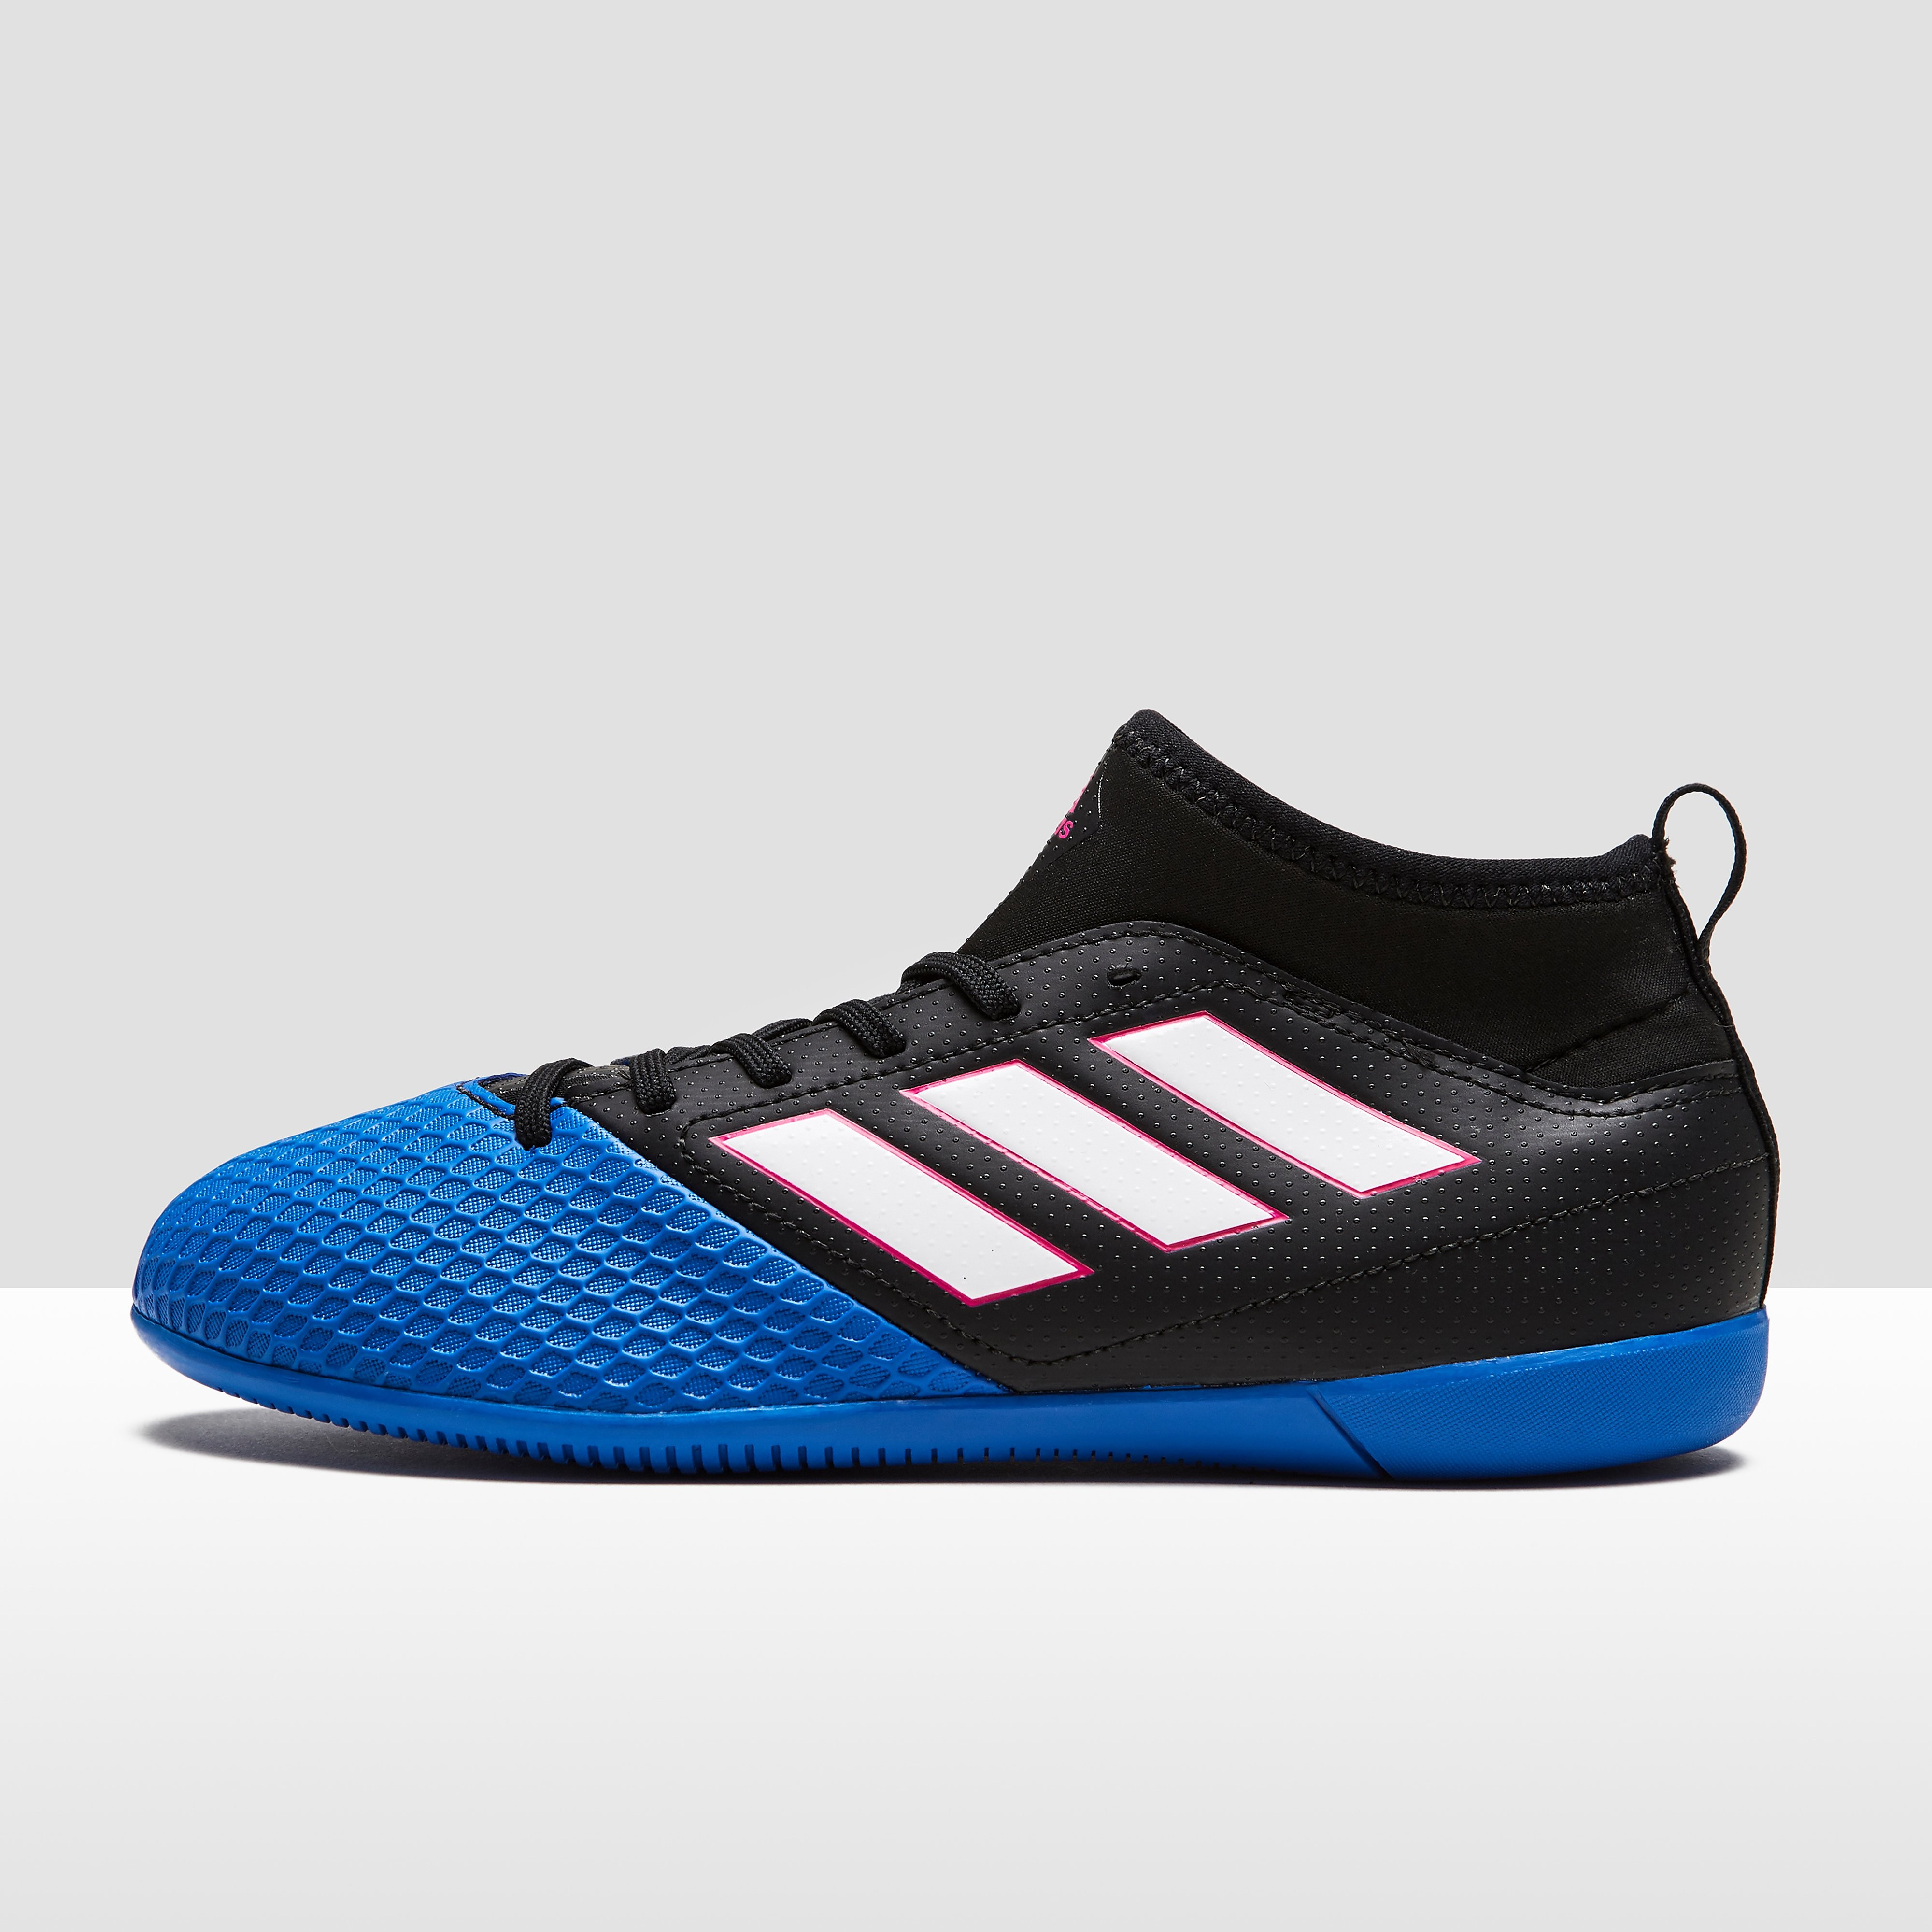 ADIDAS ACE 17.3 PRIMEMESH IN JR